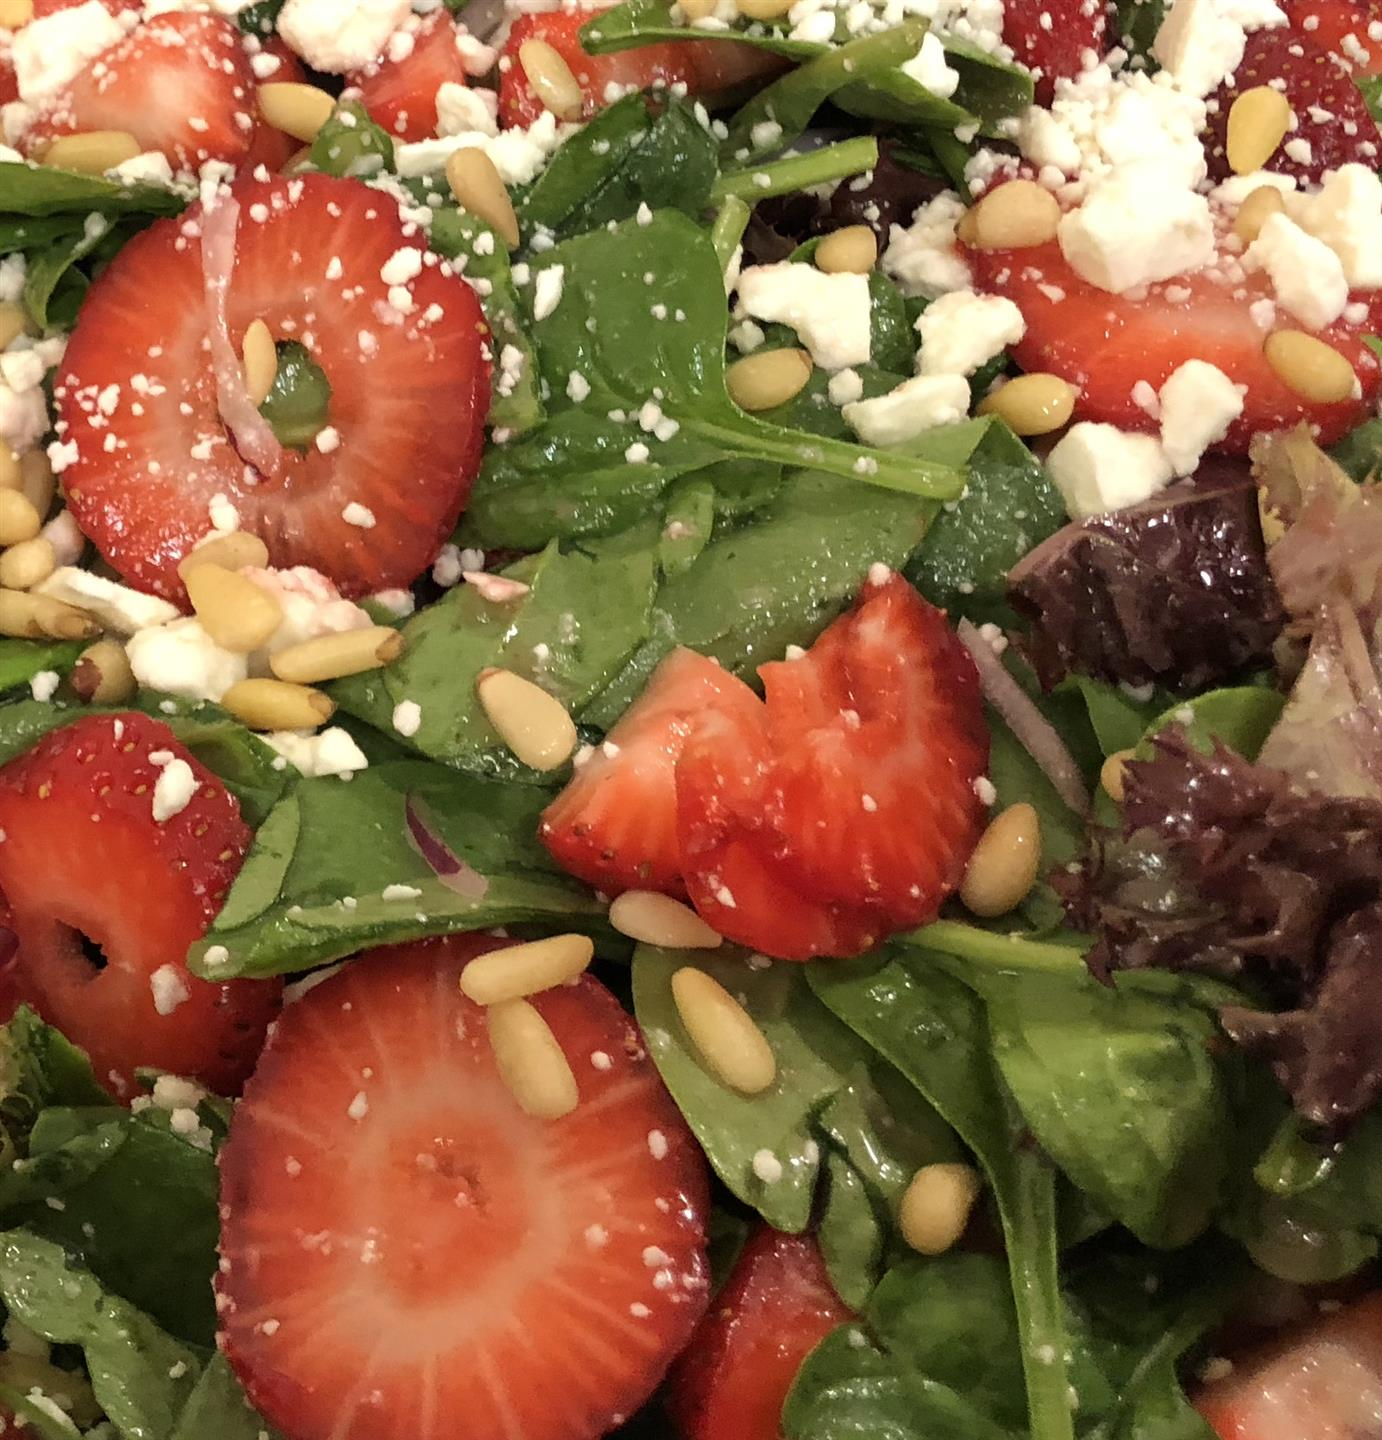 strawberry salad with pine nuts and goat cheese